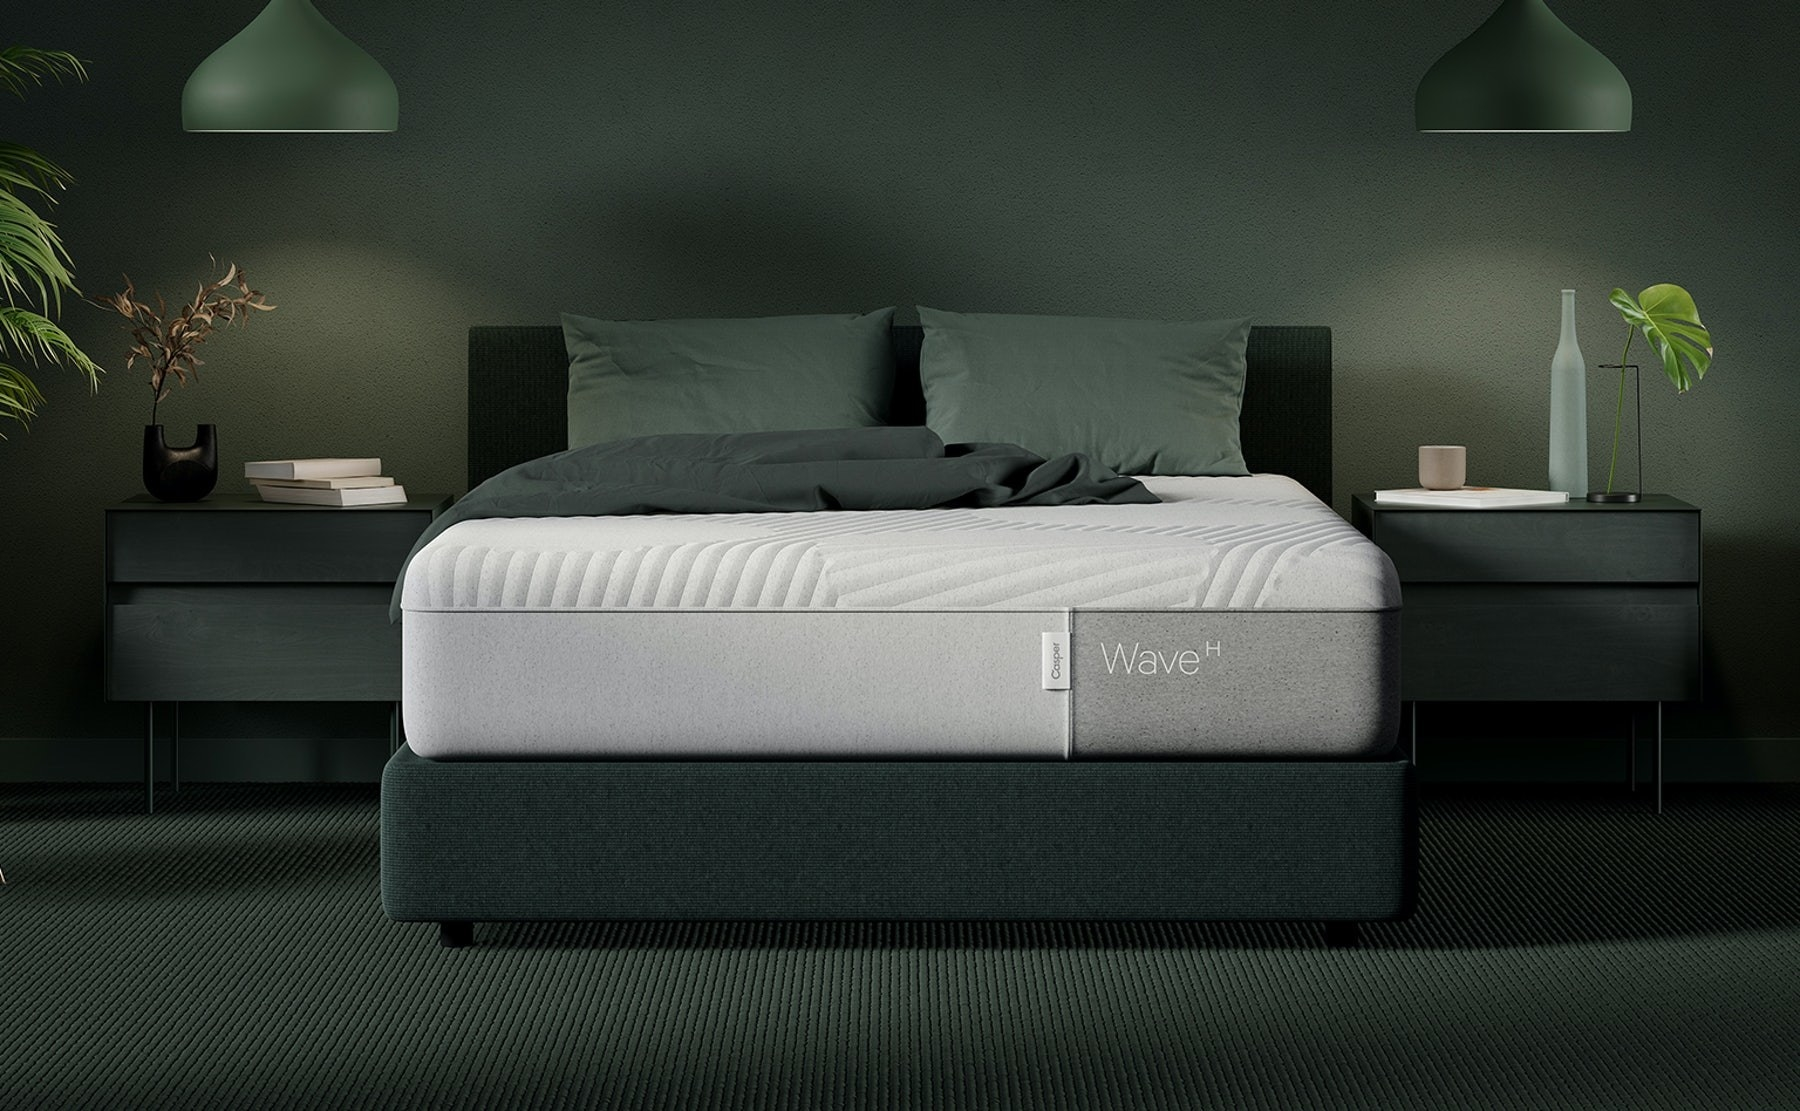 A white Casper mattress on a green bed frame